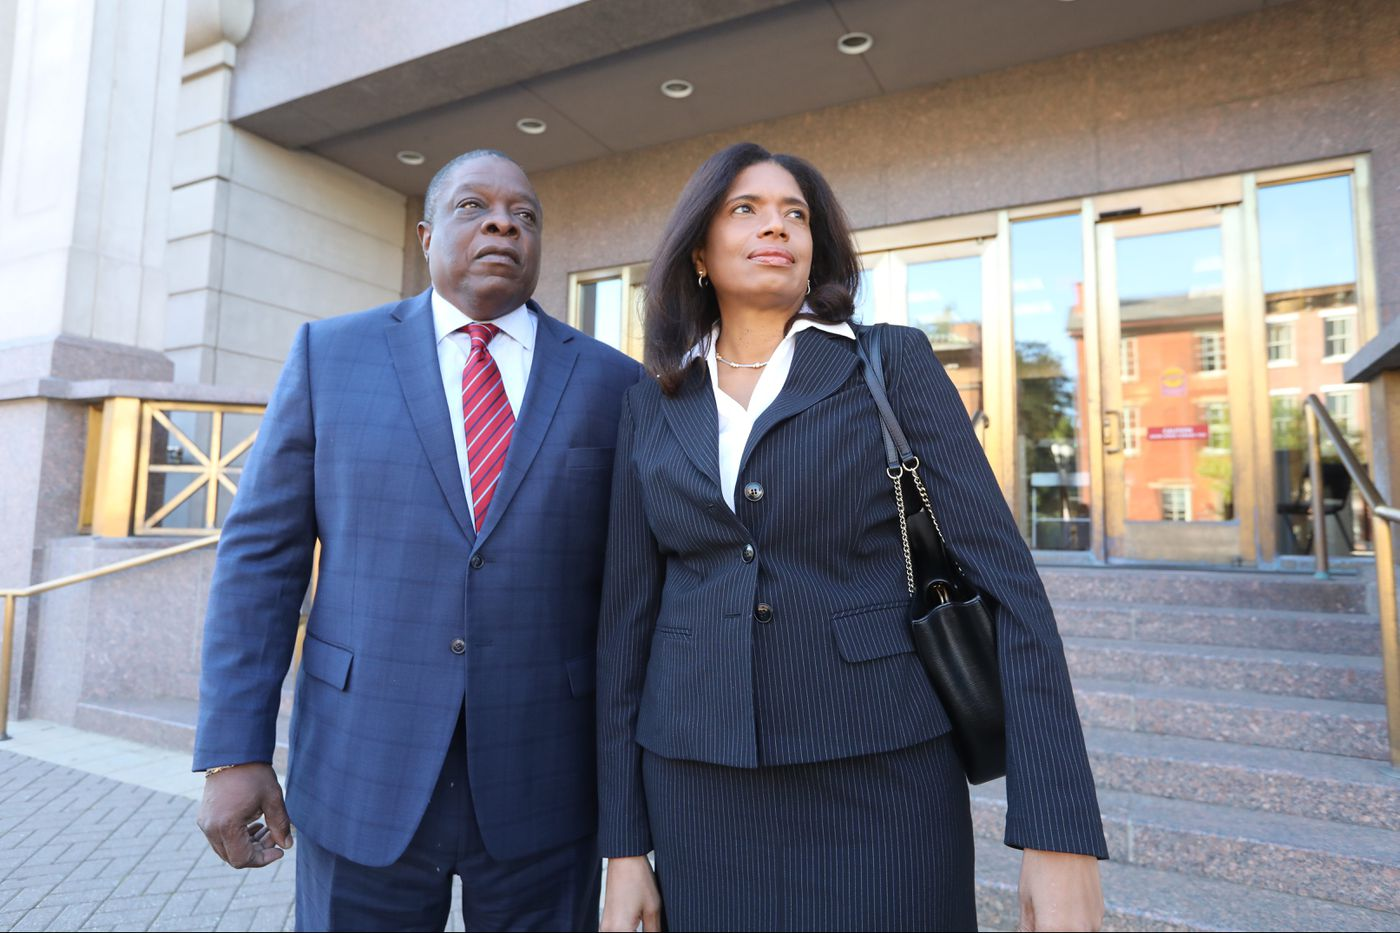 South Jersey's civil rights power couple fight for justice. 'We try to give a voice to the voiceless'